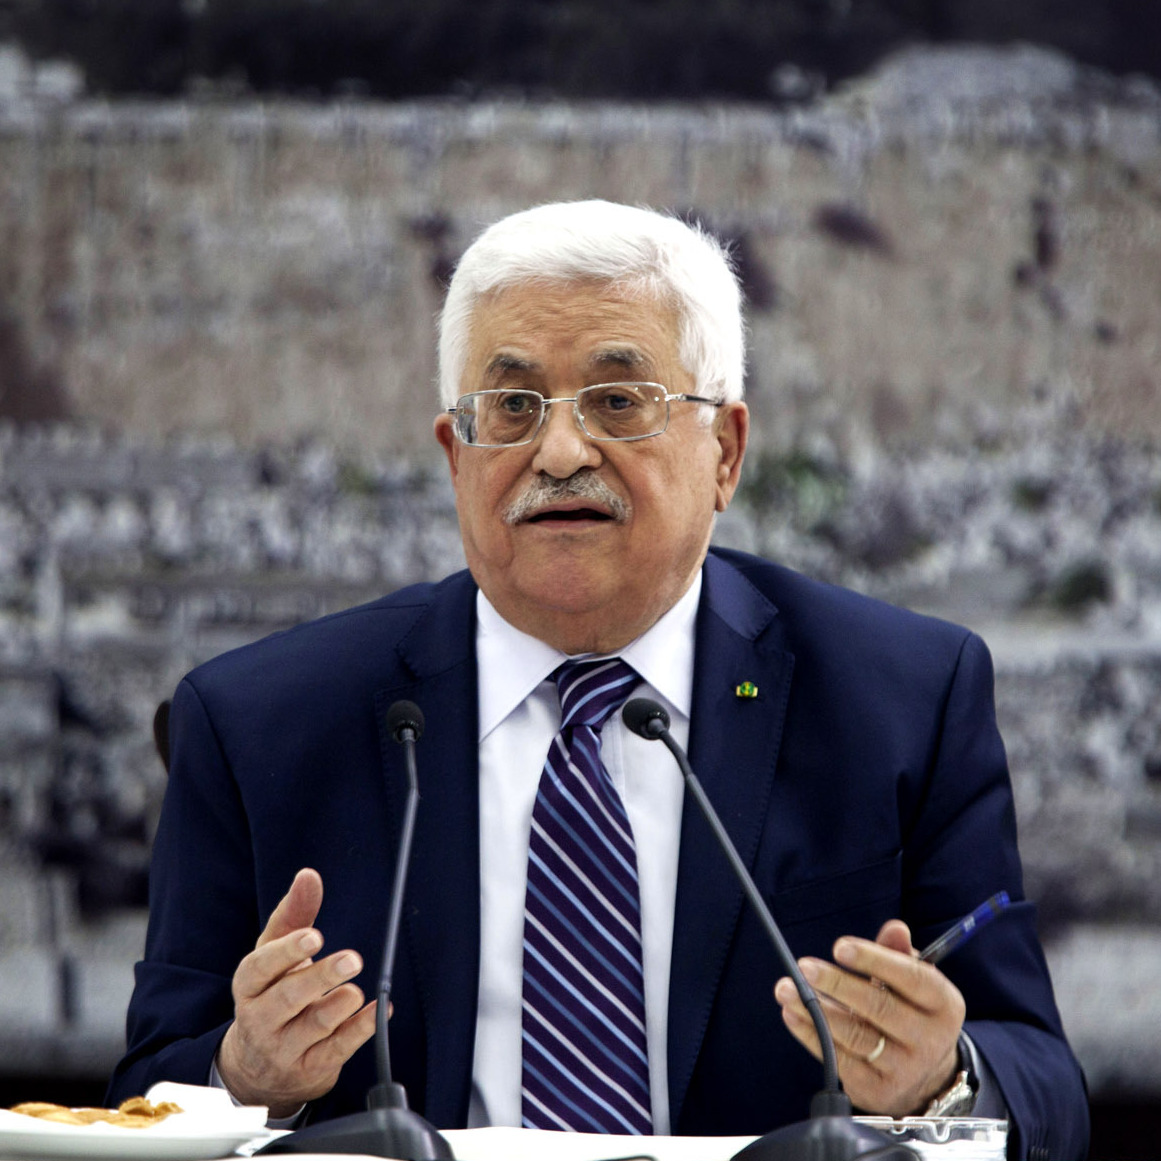 Palestinian Authority President Mahmoud Abbas, shown in the West Bank city of Ramallah on April 1, has little to show for talks with Israel. He would likely get a boost if the Palestinians could form a national unity government.